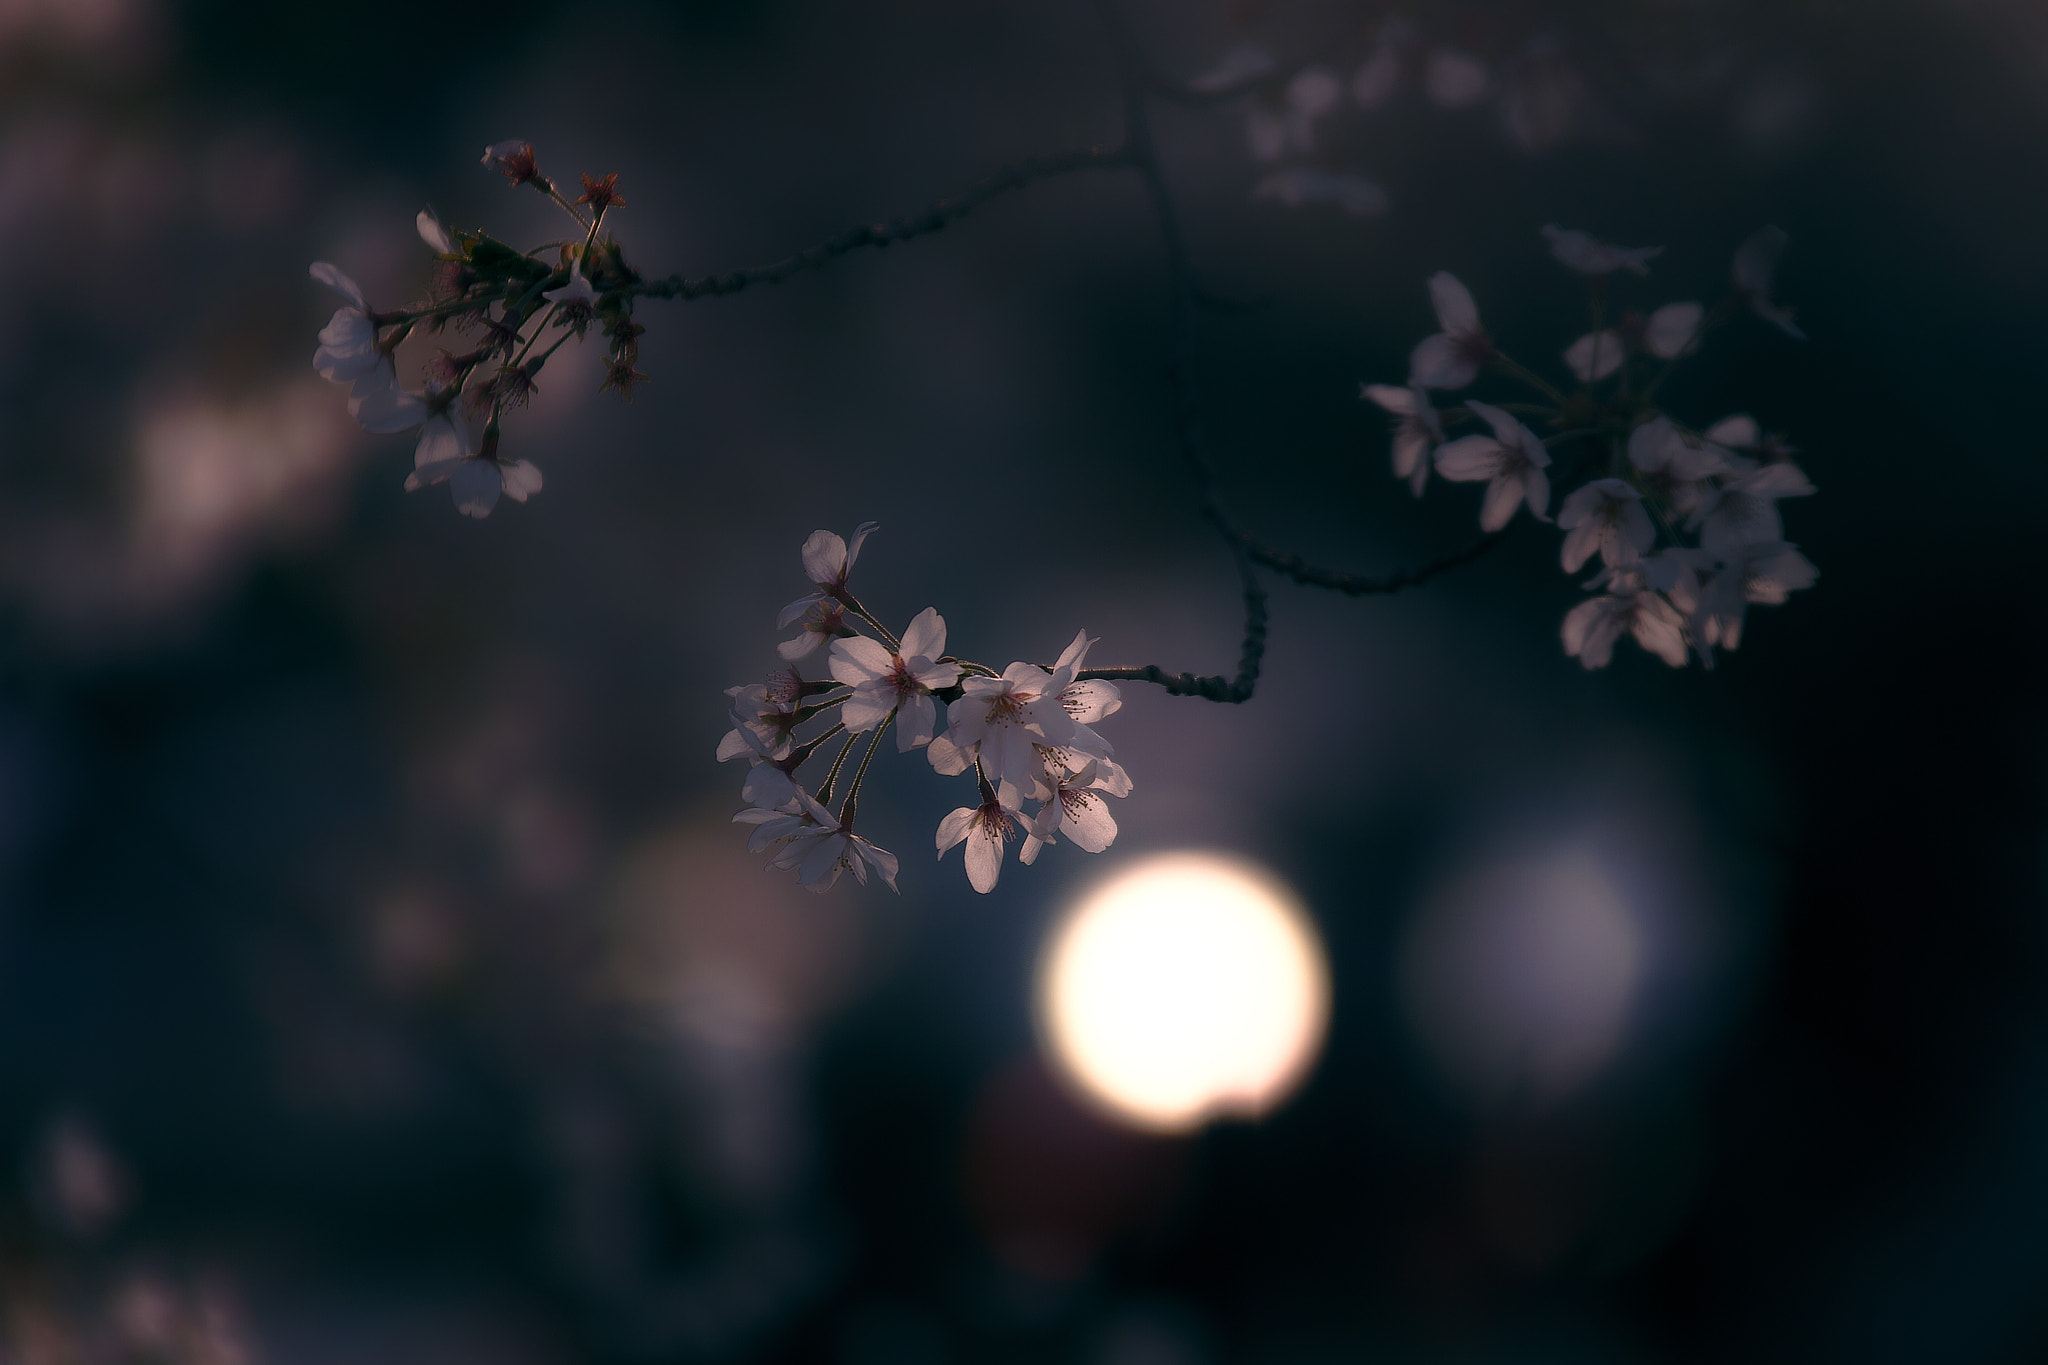 Photograph spring light by Junya Hasegawa on 500px